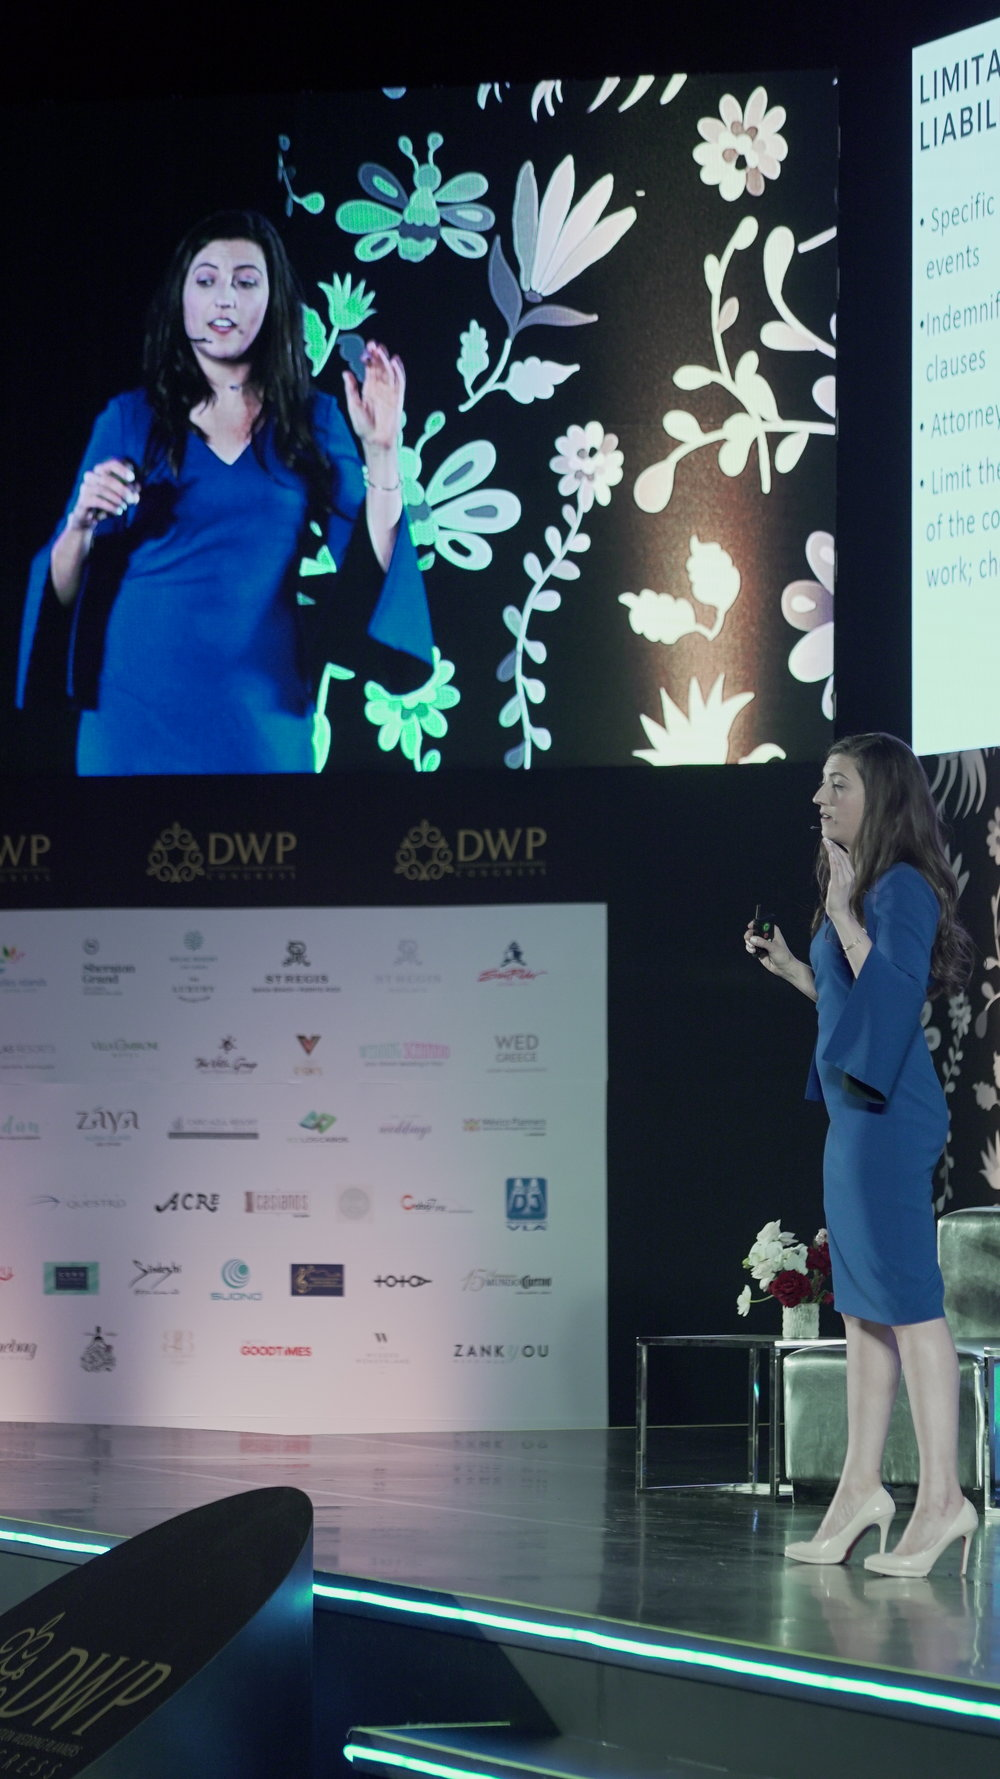 Me gabbing away about contracts in Mexico at the Destination Wedding Planner's conference.